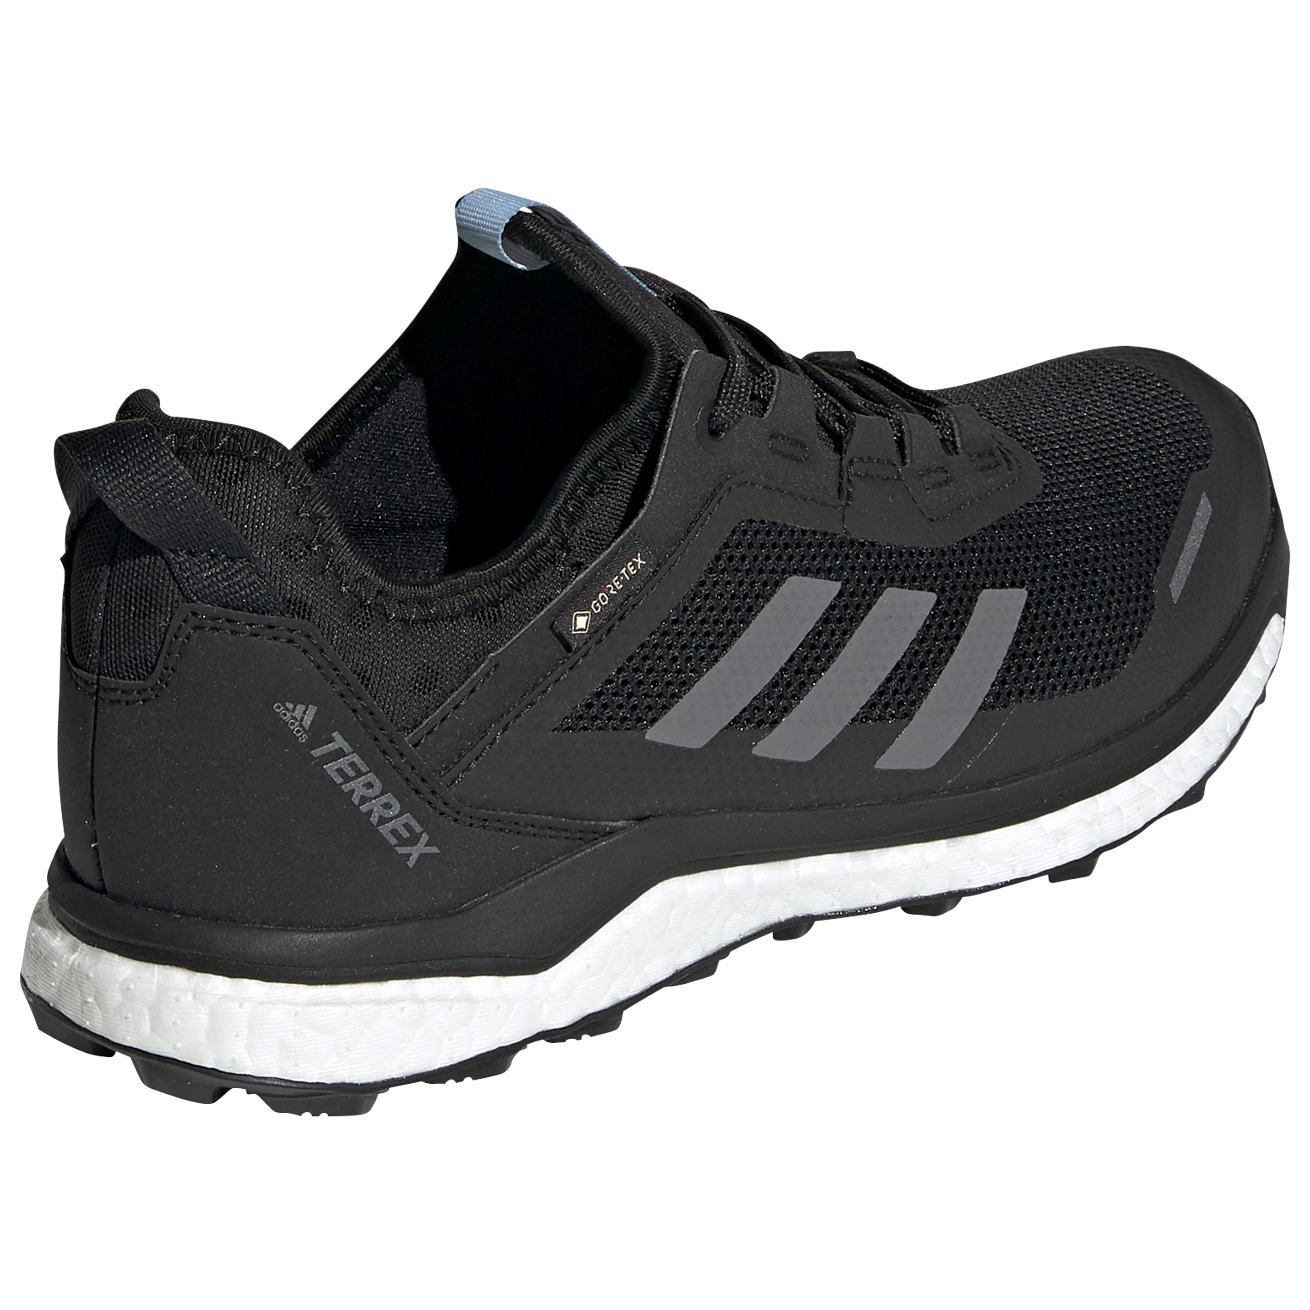 adidas - Women's Terrex Agravic Flow GTX - Trail running shoes - Cblack /  Grethr / Grefou | 3,5 (UK)